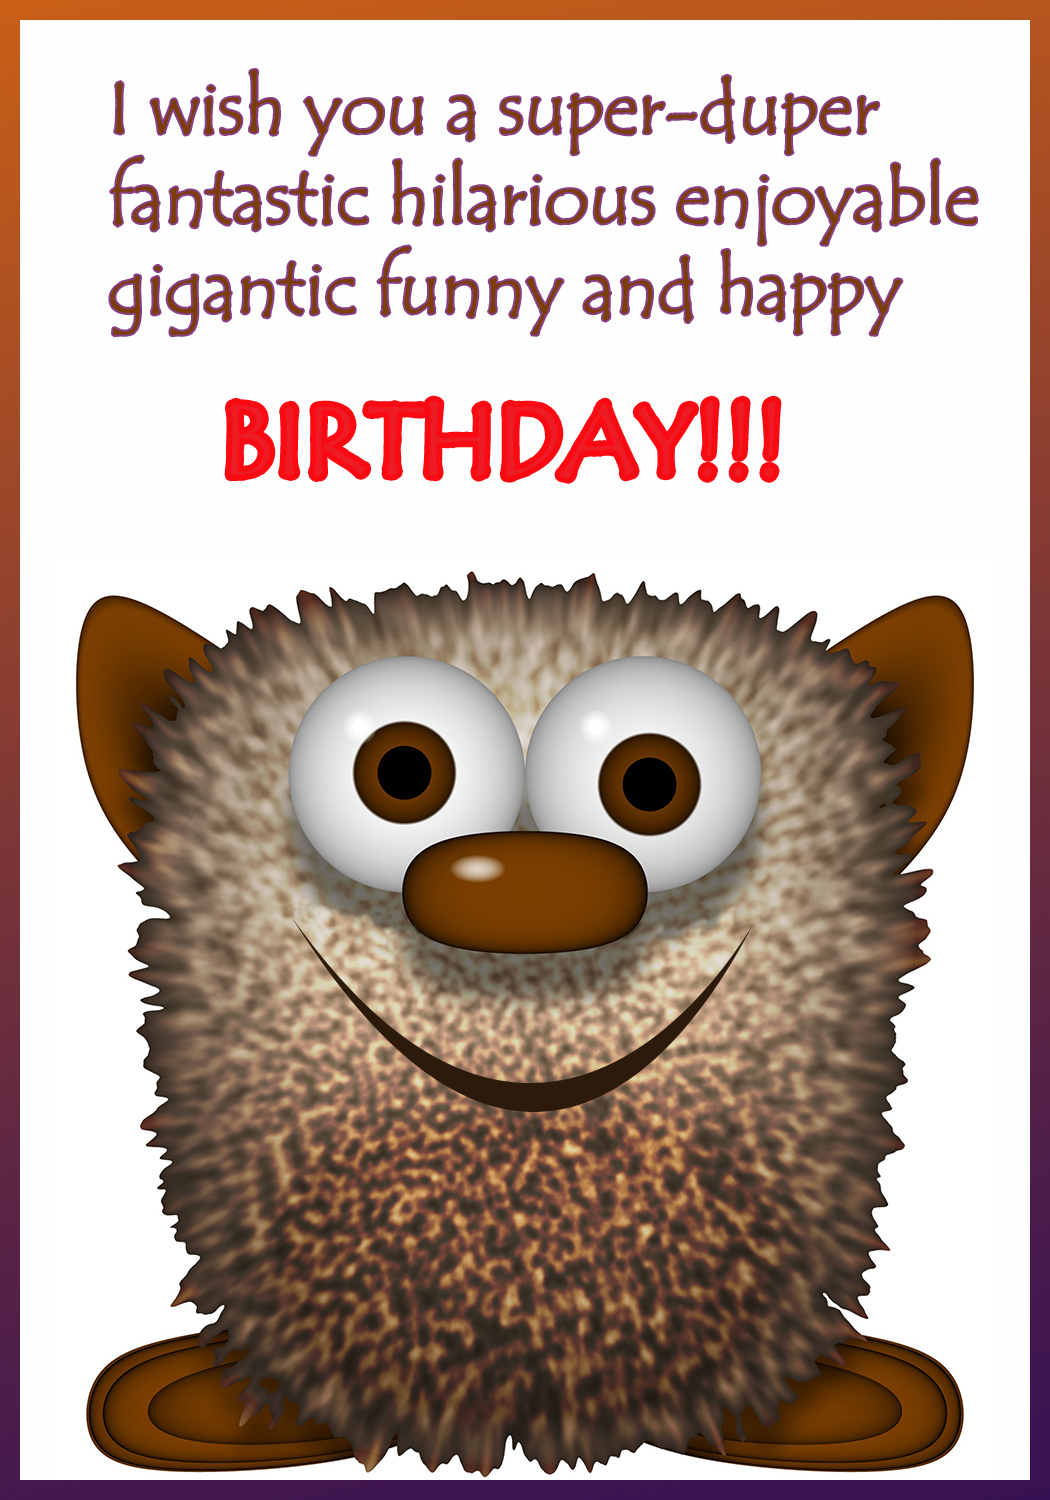 funny printable birthday cards, Birthday card